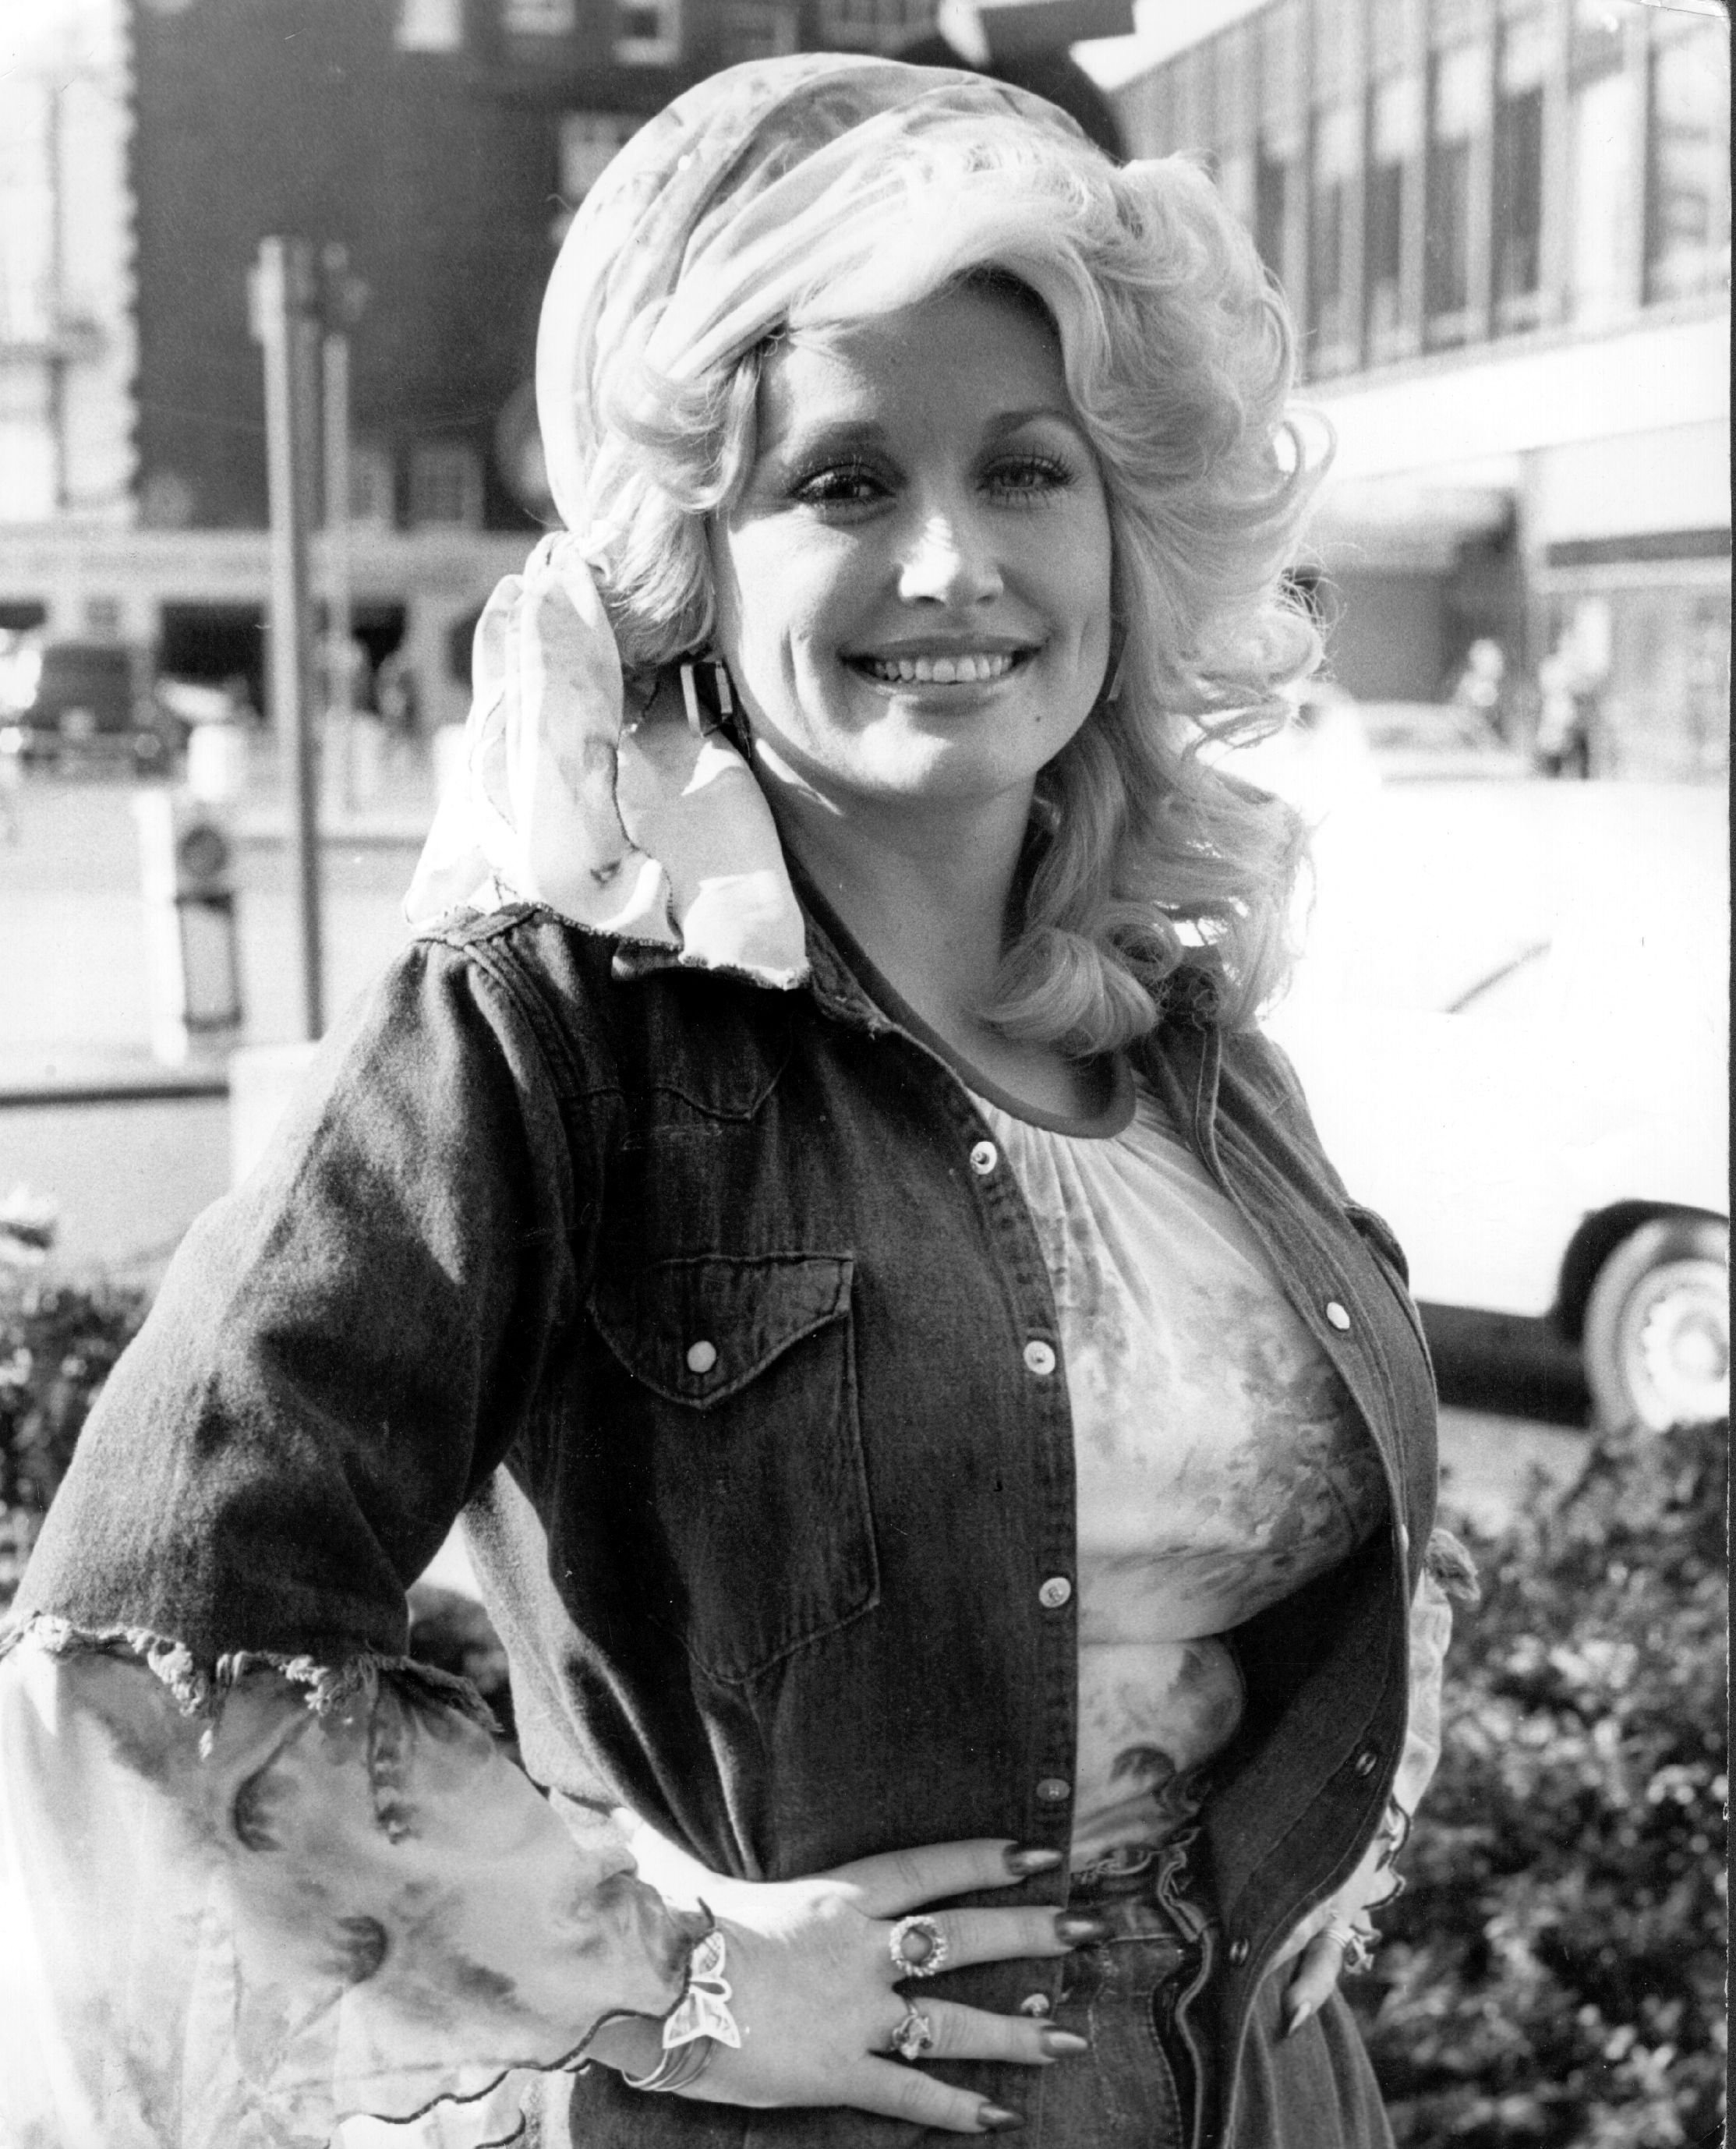 Dolly Parton à Londres après un concert au King's Theatre. | Source: Getty Images